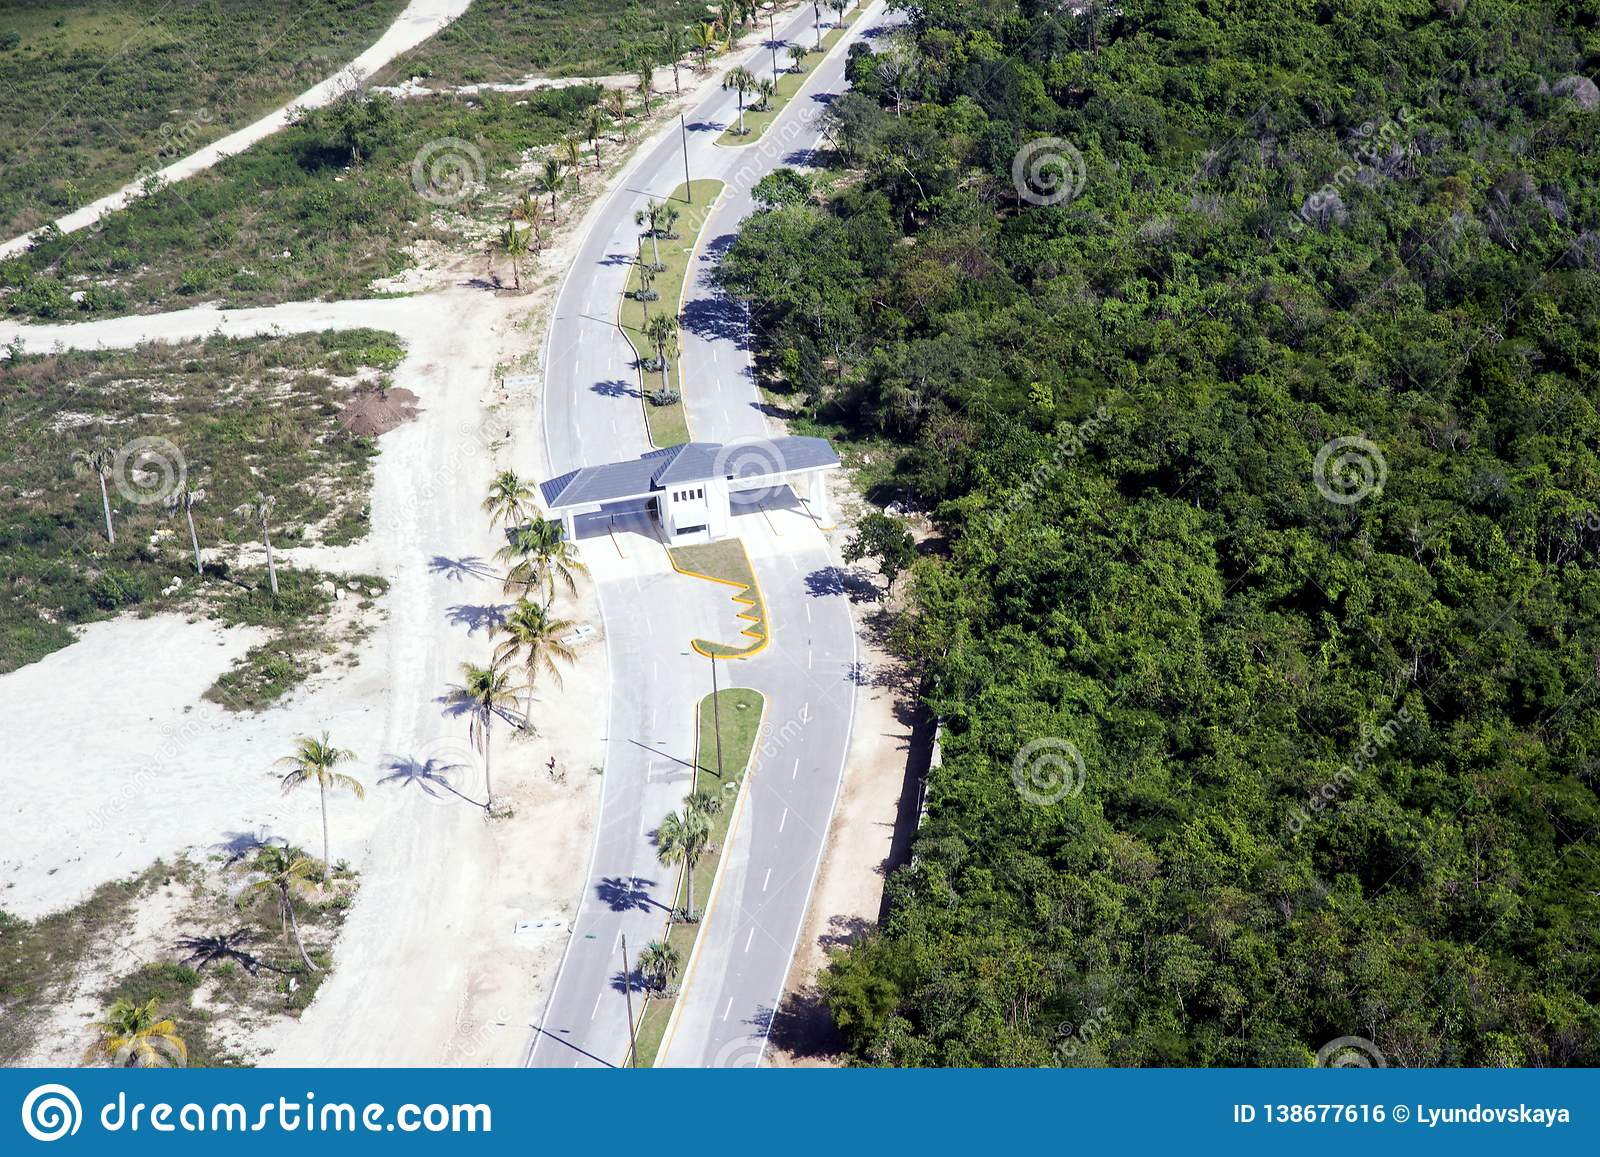 The road, the checkpoint divides the territory of Punta Cana, the Dominican Republic into two parts: a national park and the coast